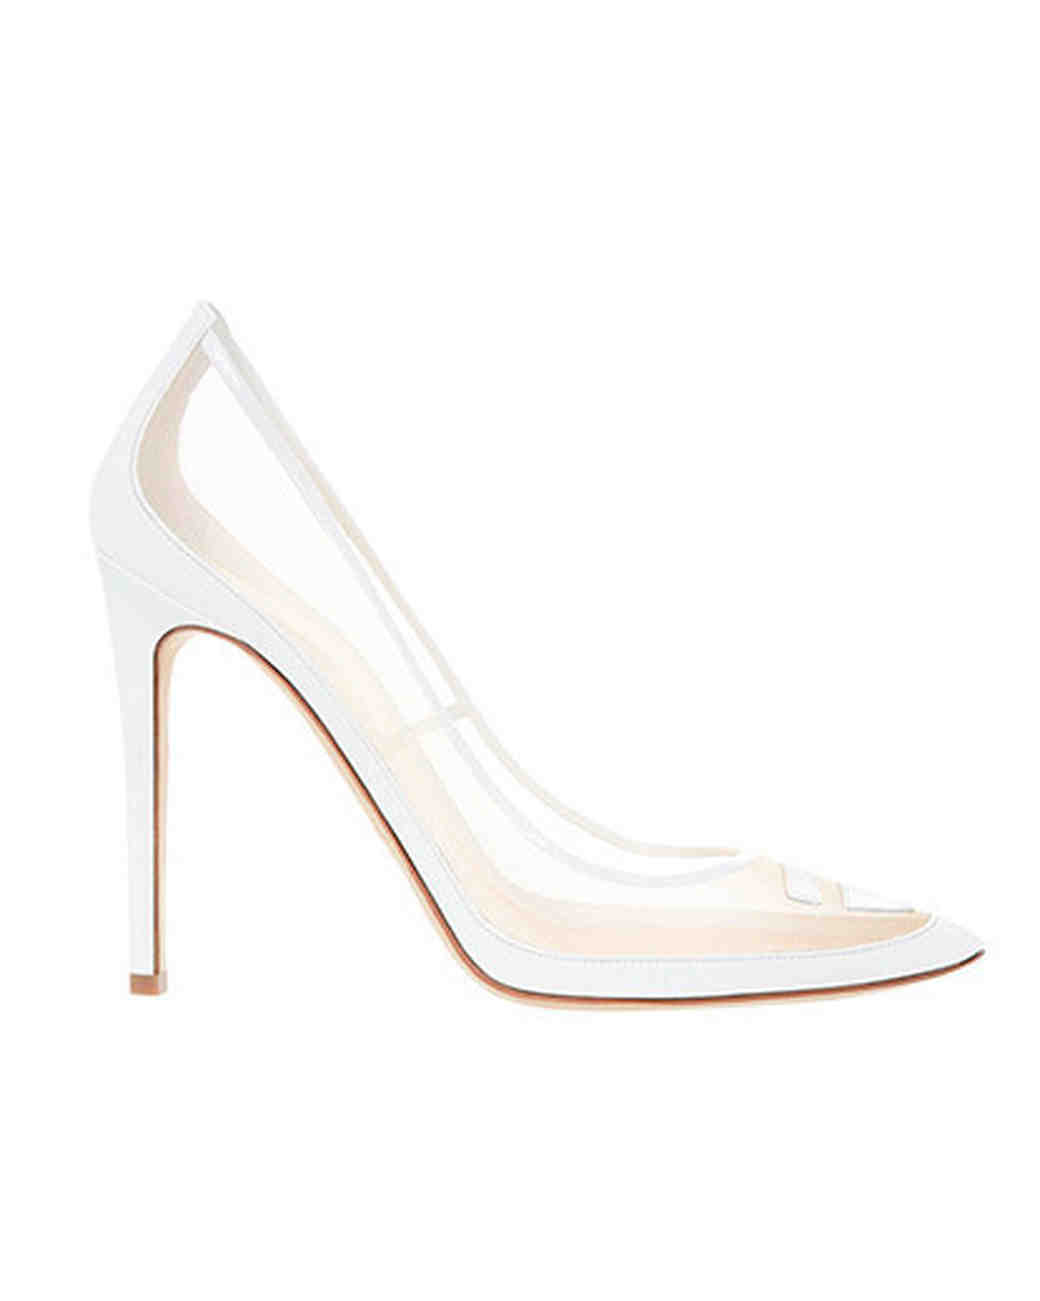 fcc05265ea98 12 Wedding Shoes That Are a Sheer Delight